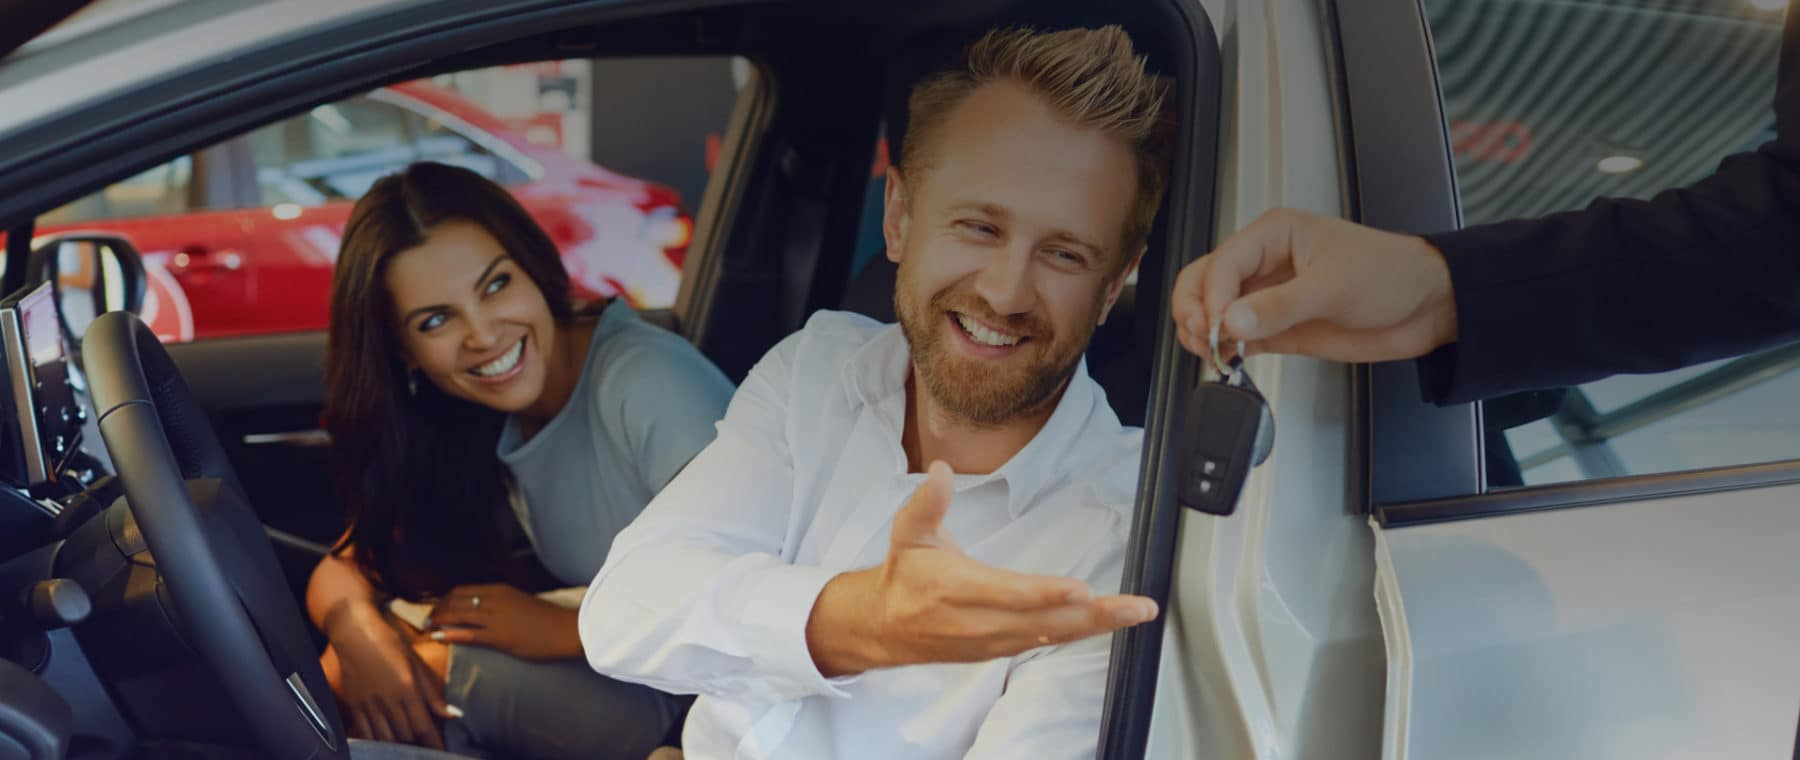 Couple Accepts Car Key while sitting in car